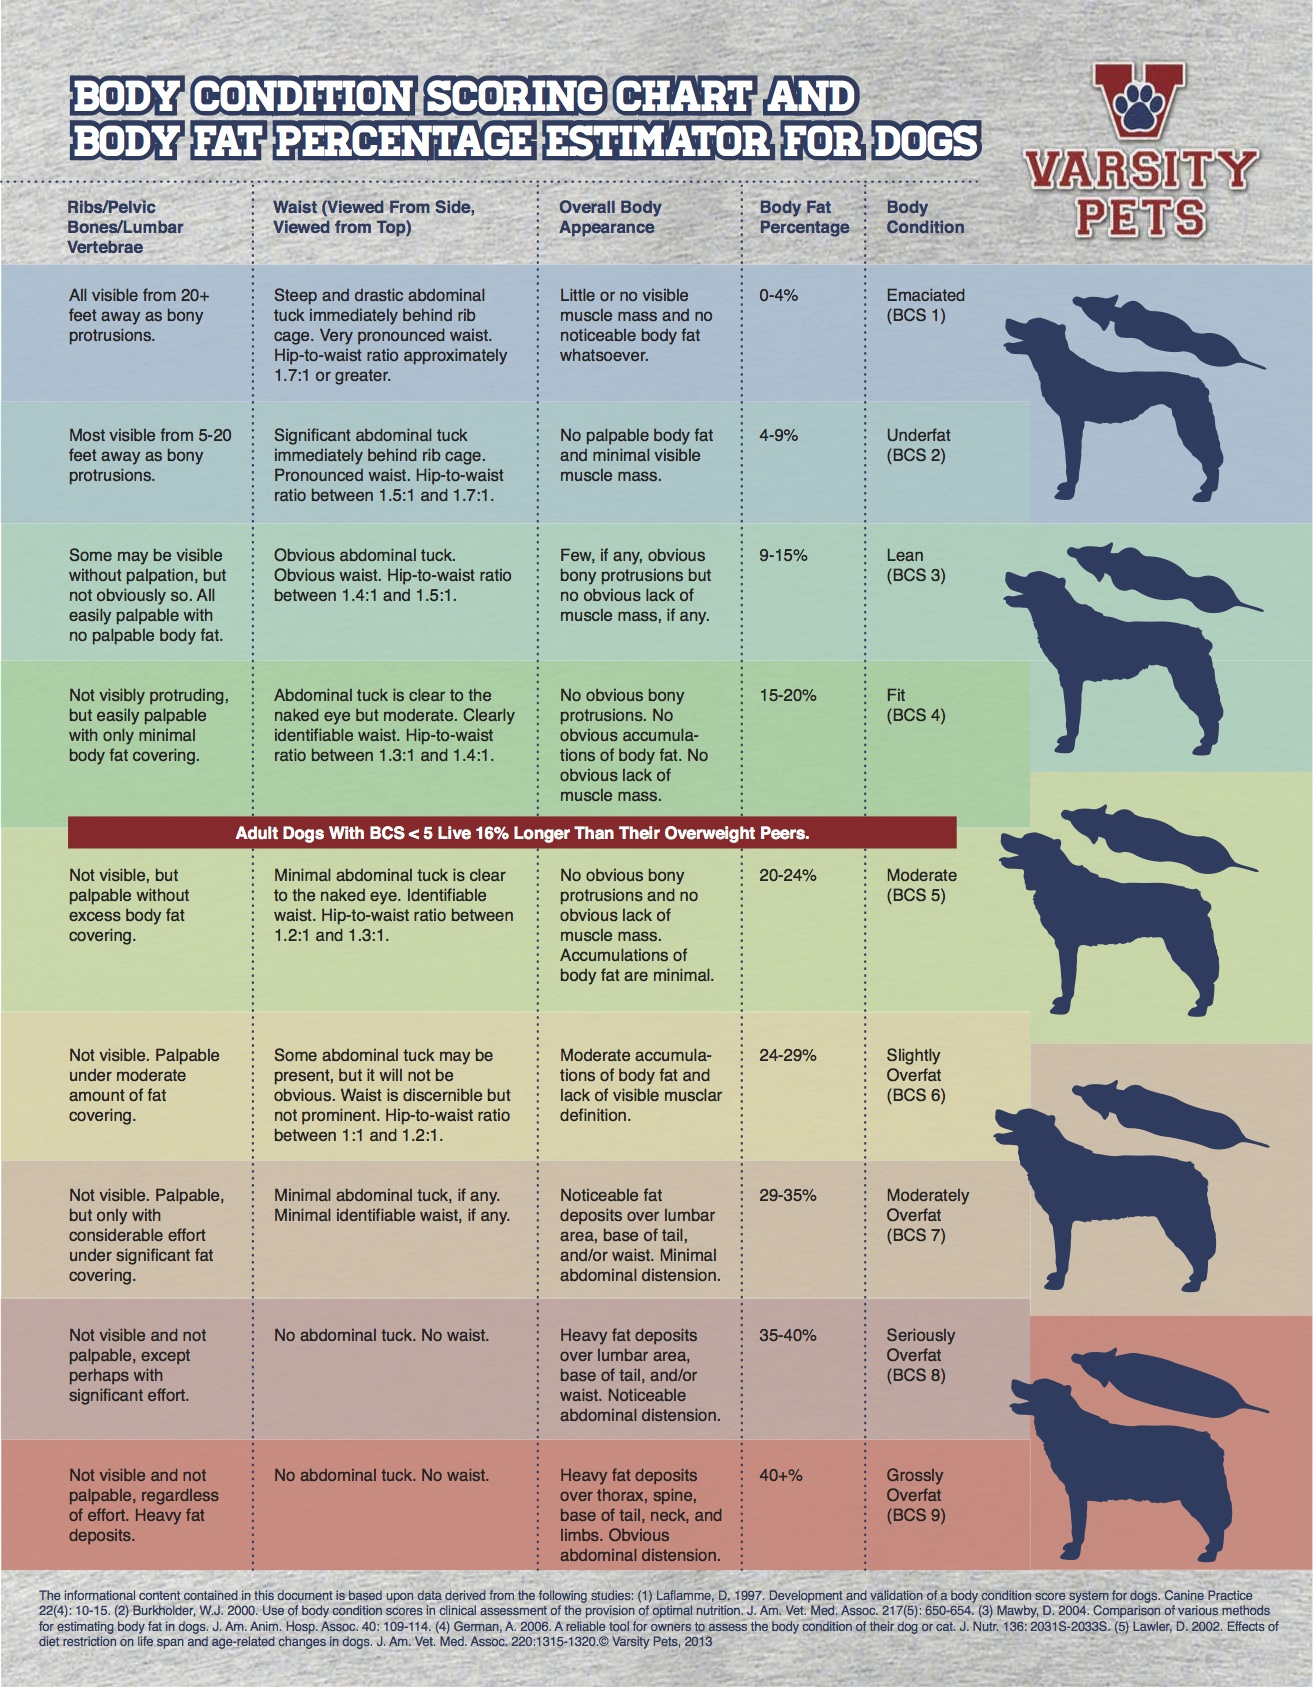 Body Condition Scoring Chart For Dogs copy